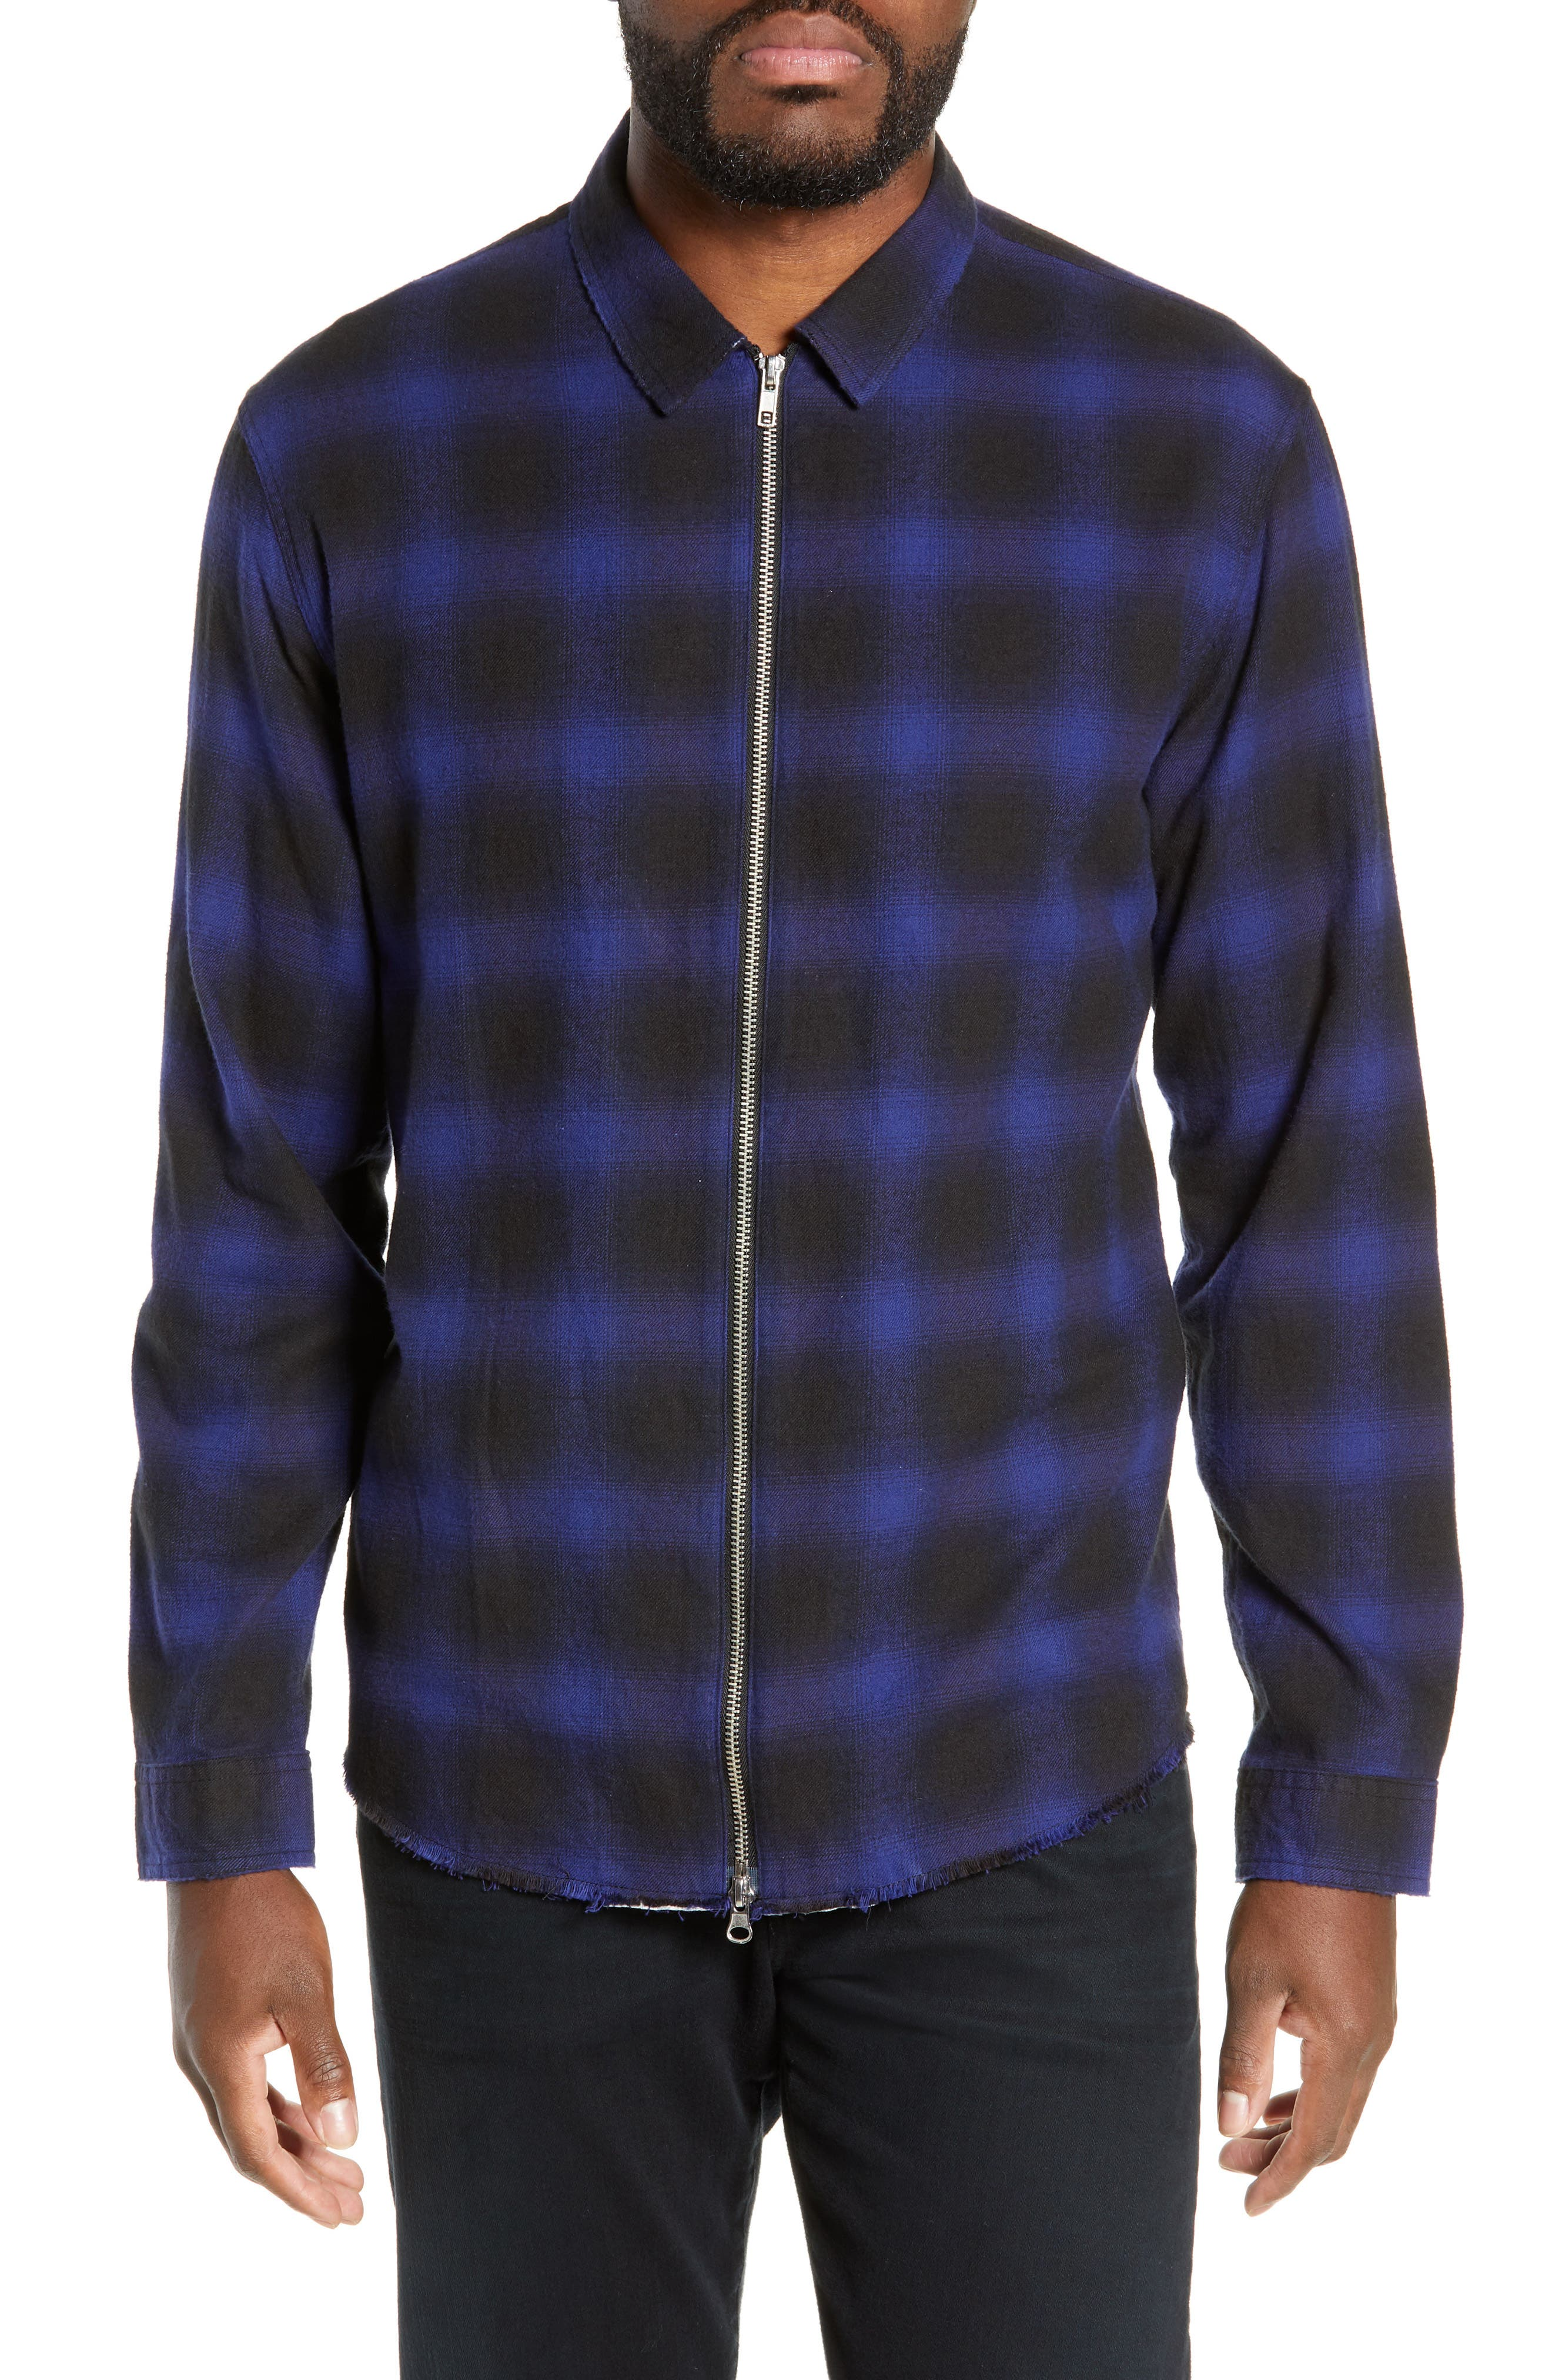 THE KOOPLES Zip Flannel Jacket, Main, color, BLUE BLACK